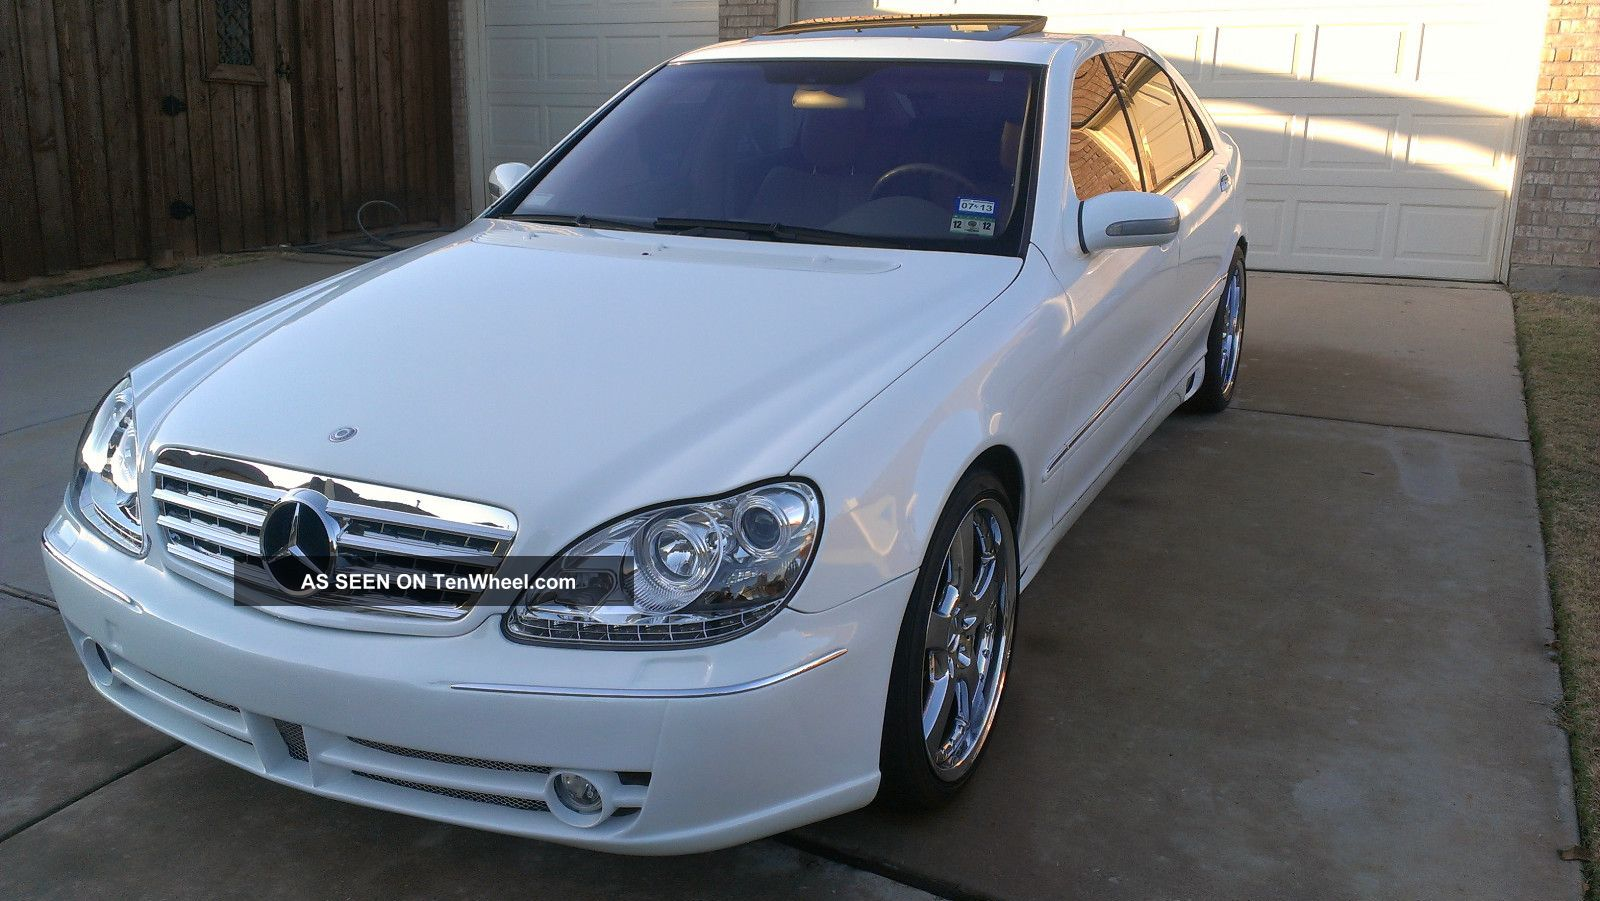 2001 mercedes benz s430 white with many upgrades for S430 mercedes benz